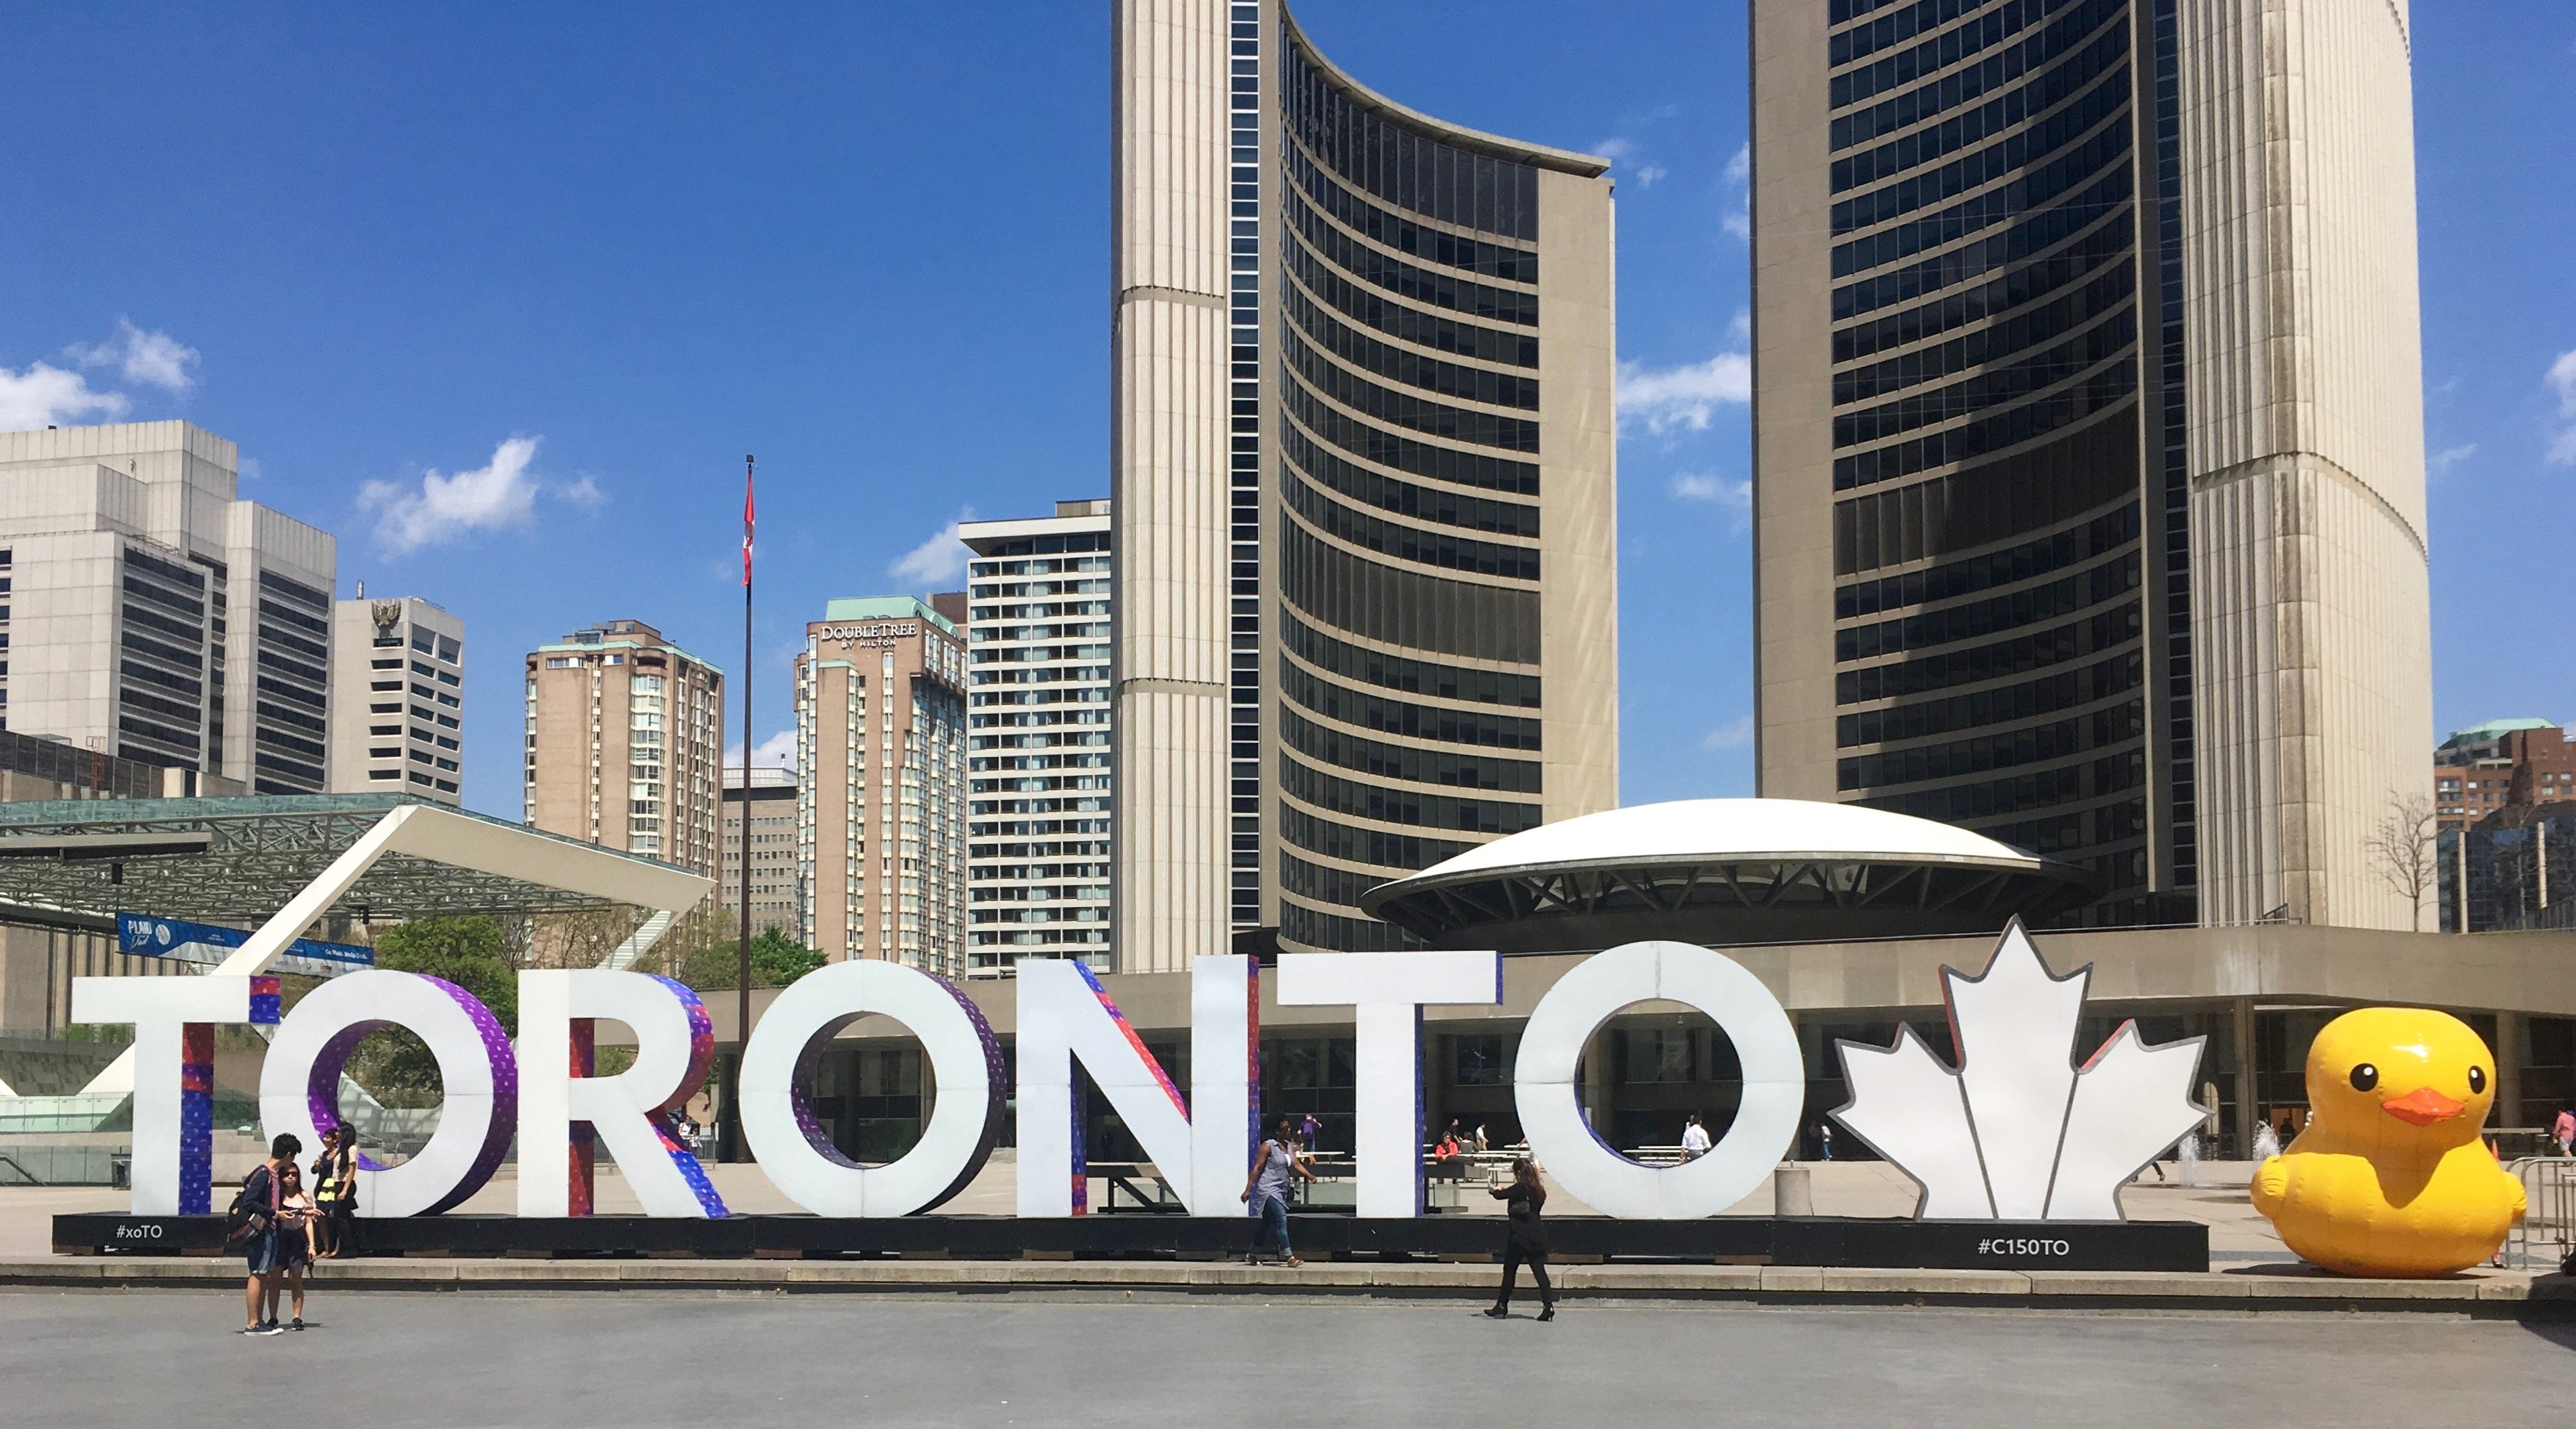 There is a giant rubber duck beside the Toronto sign right now (PHOTOS)